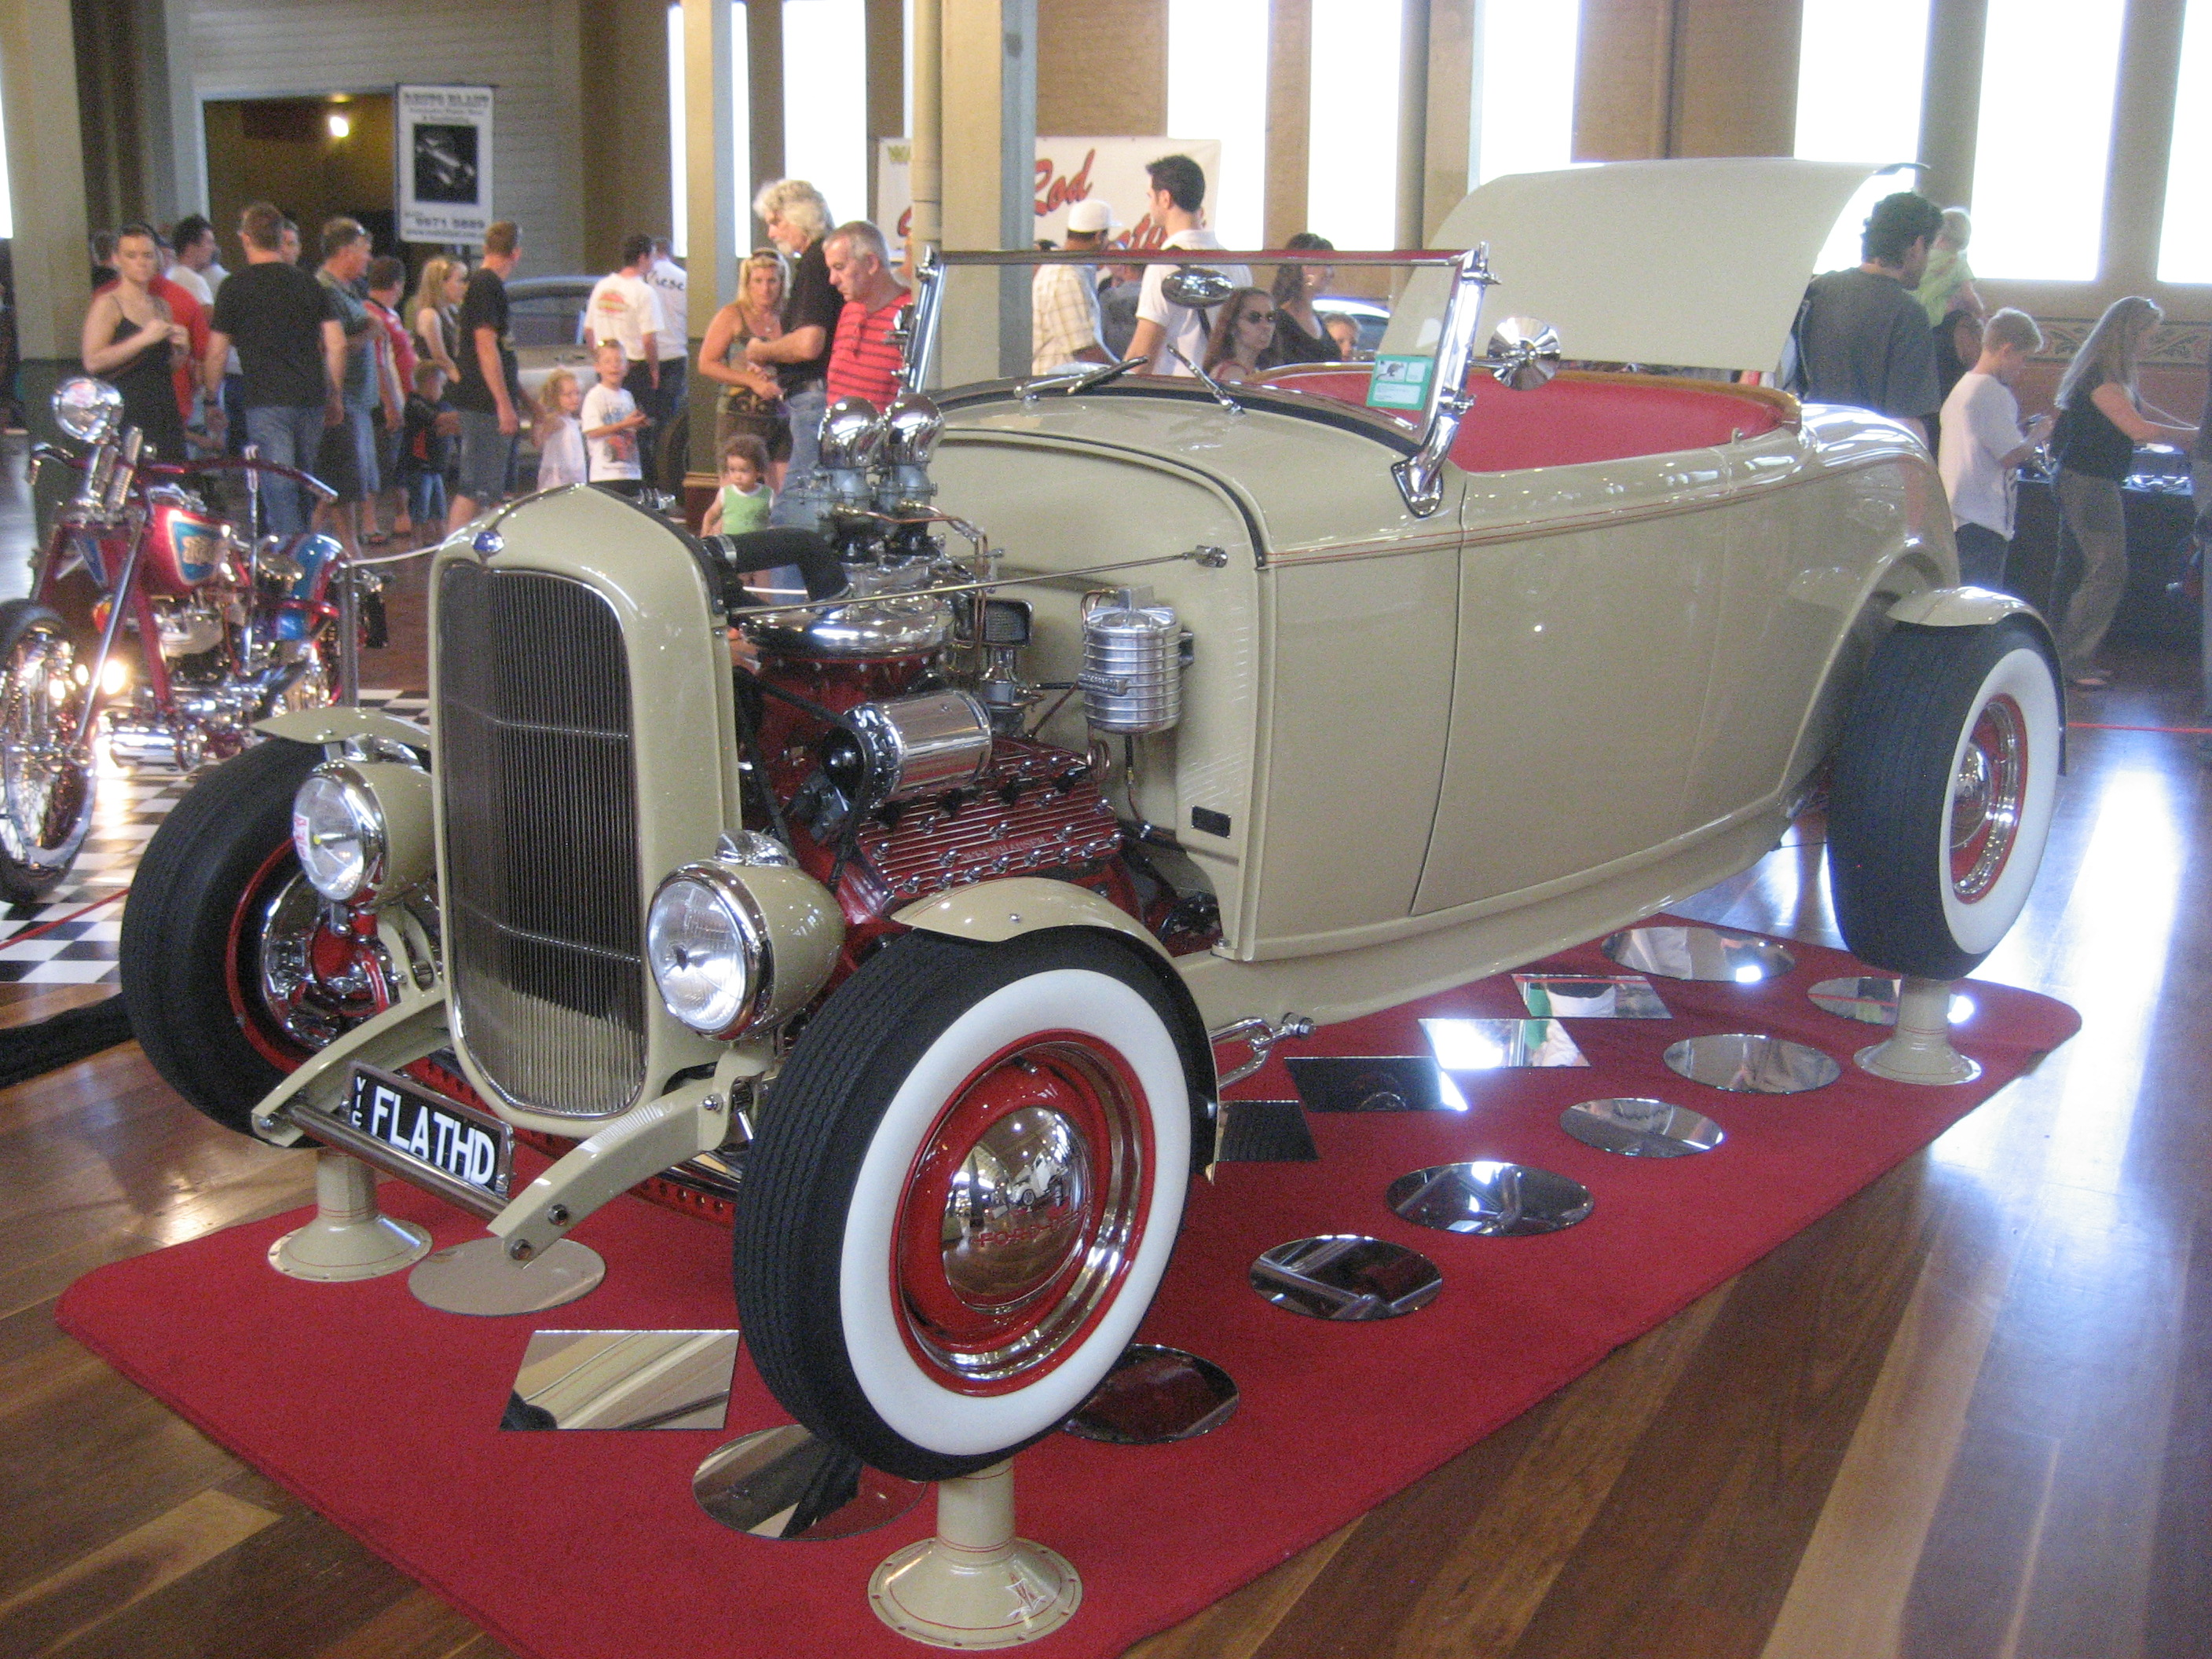 File:1932 Ford Roadster Hot Rod (8).jpg - Wikimedia Commons